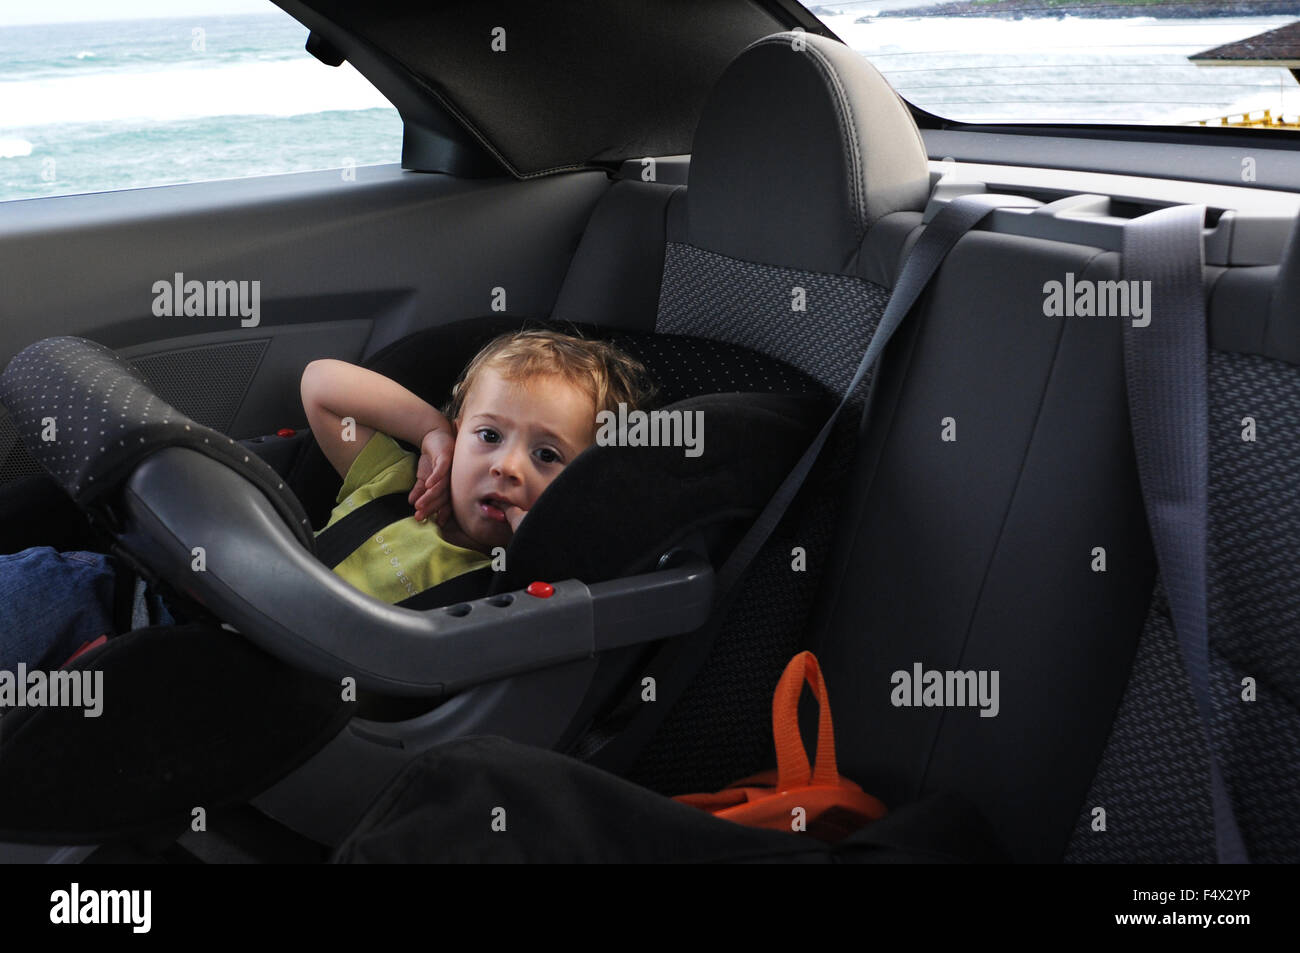 Child in a baby seat rear of a Rental car Chrysler Sebring Stock ...